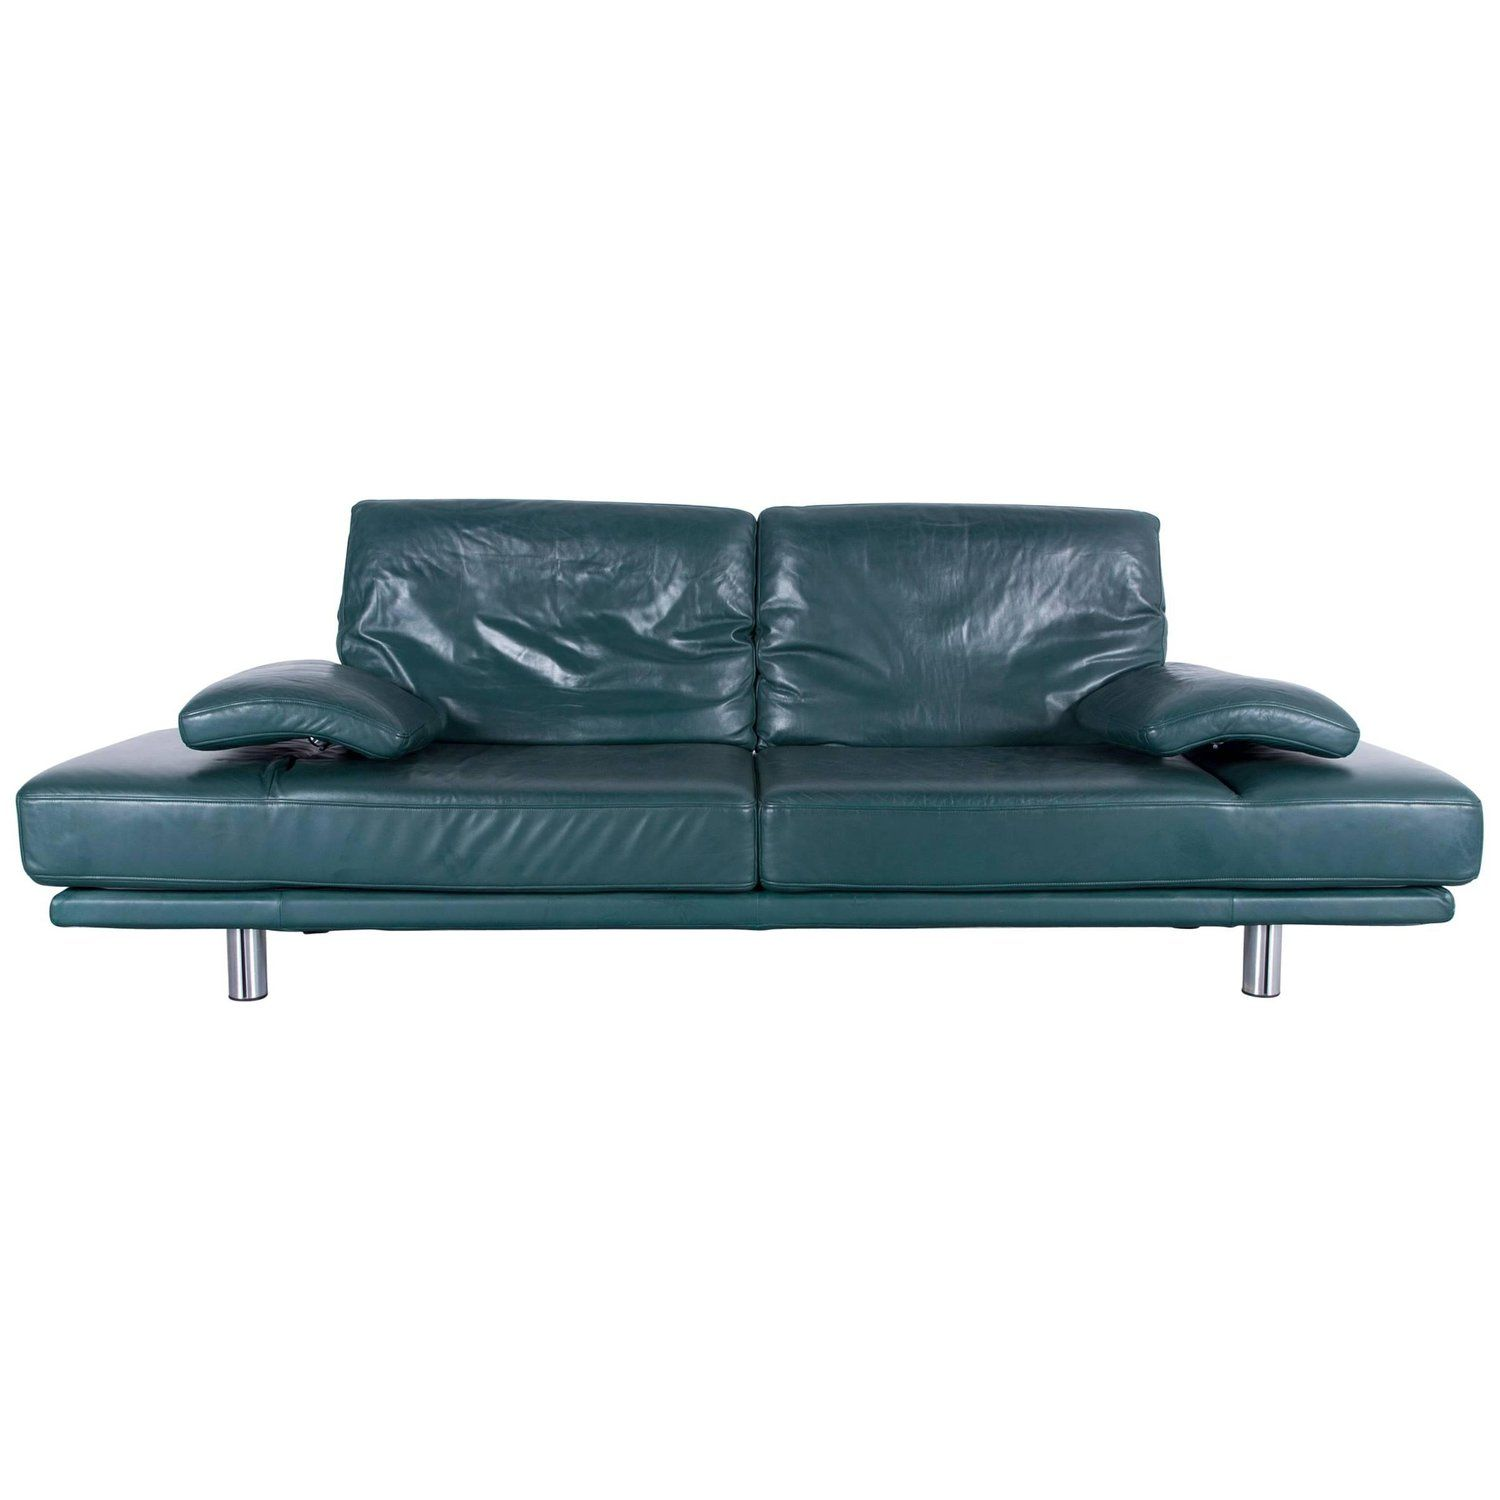 Rolf Benz 2400 Designer Sofa Green Two Seat Leather Modern Couch